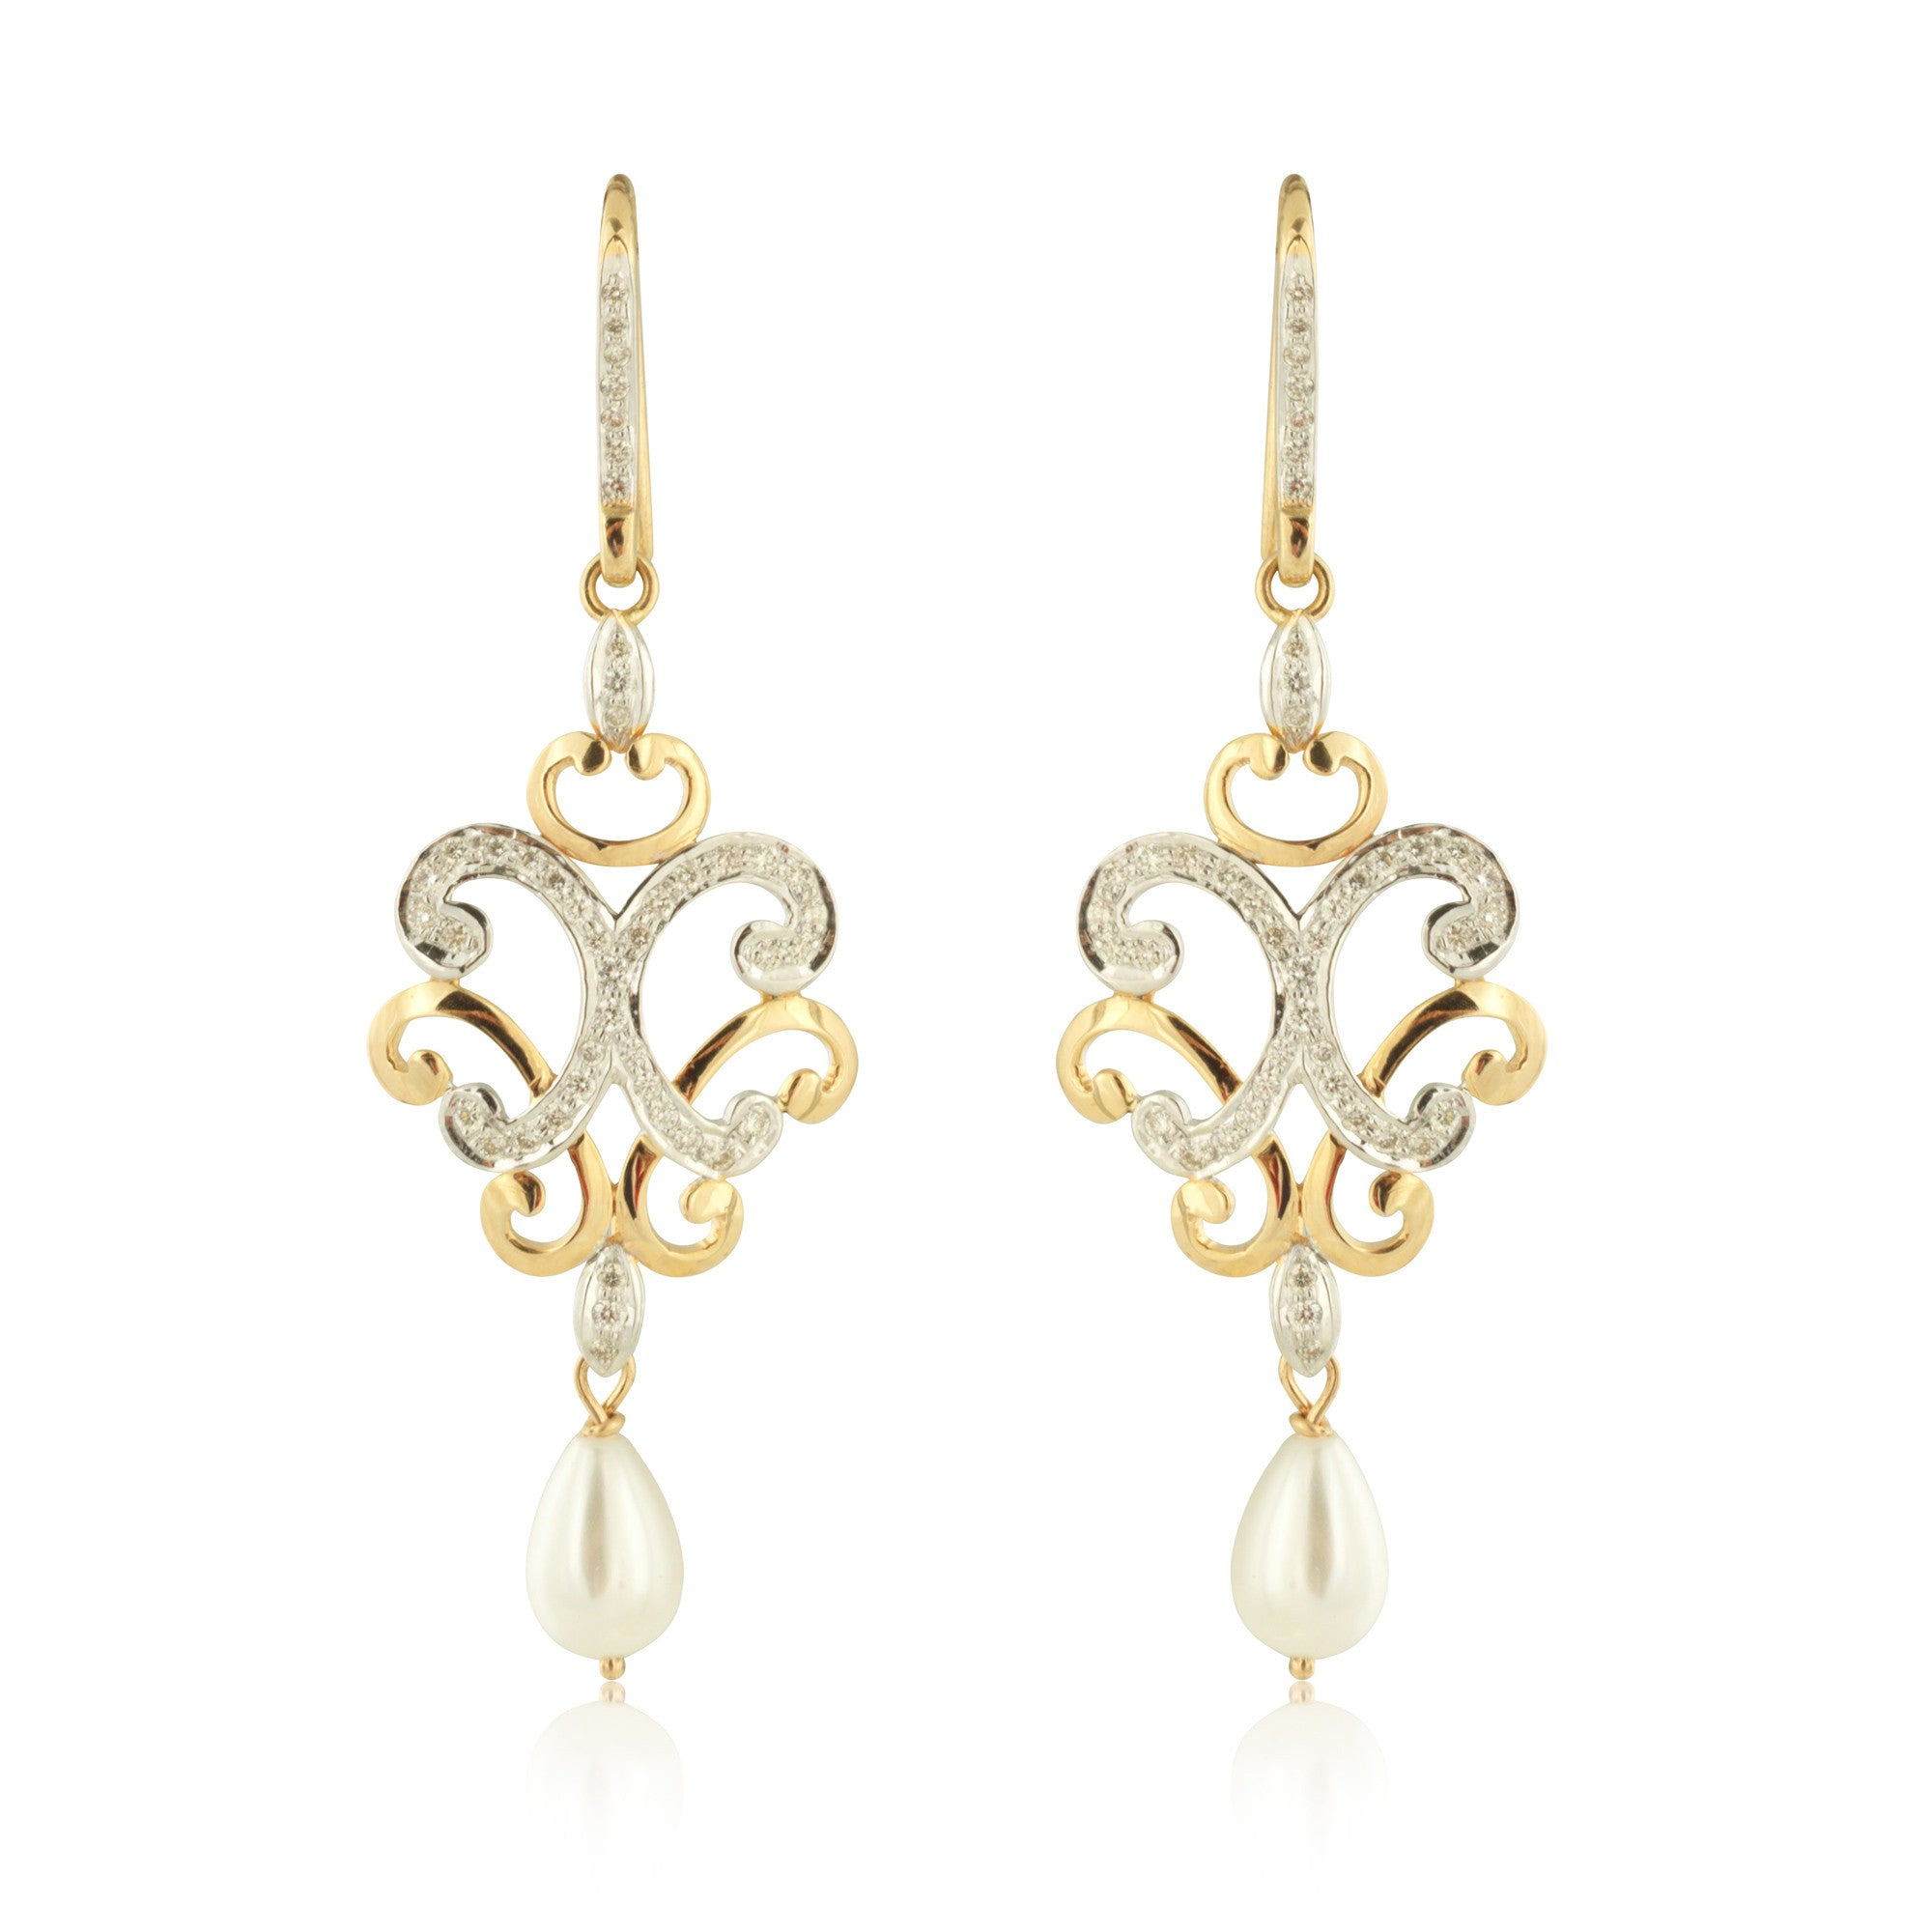 gold shop and upscale yellow earrings winterson enchanted subsampling white in the lief false scale with diamond product crop akoya tahitian interchangeable pearl jewellery editor